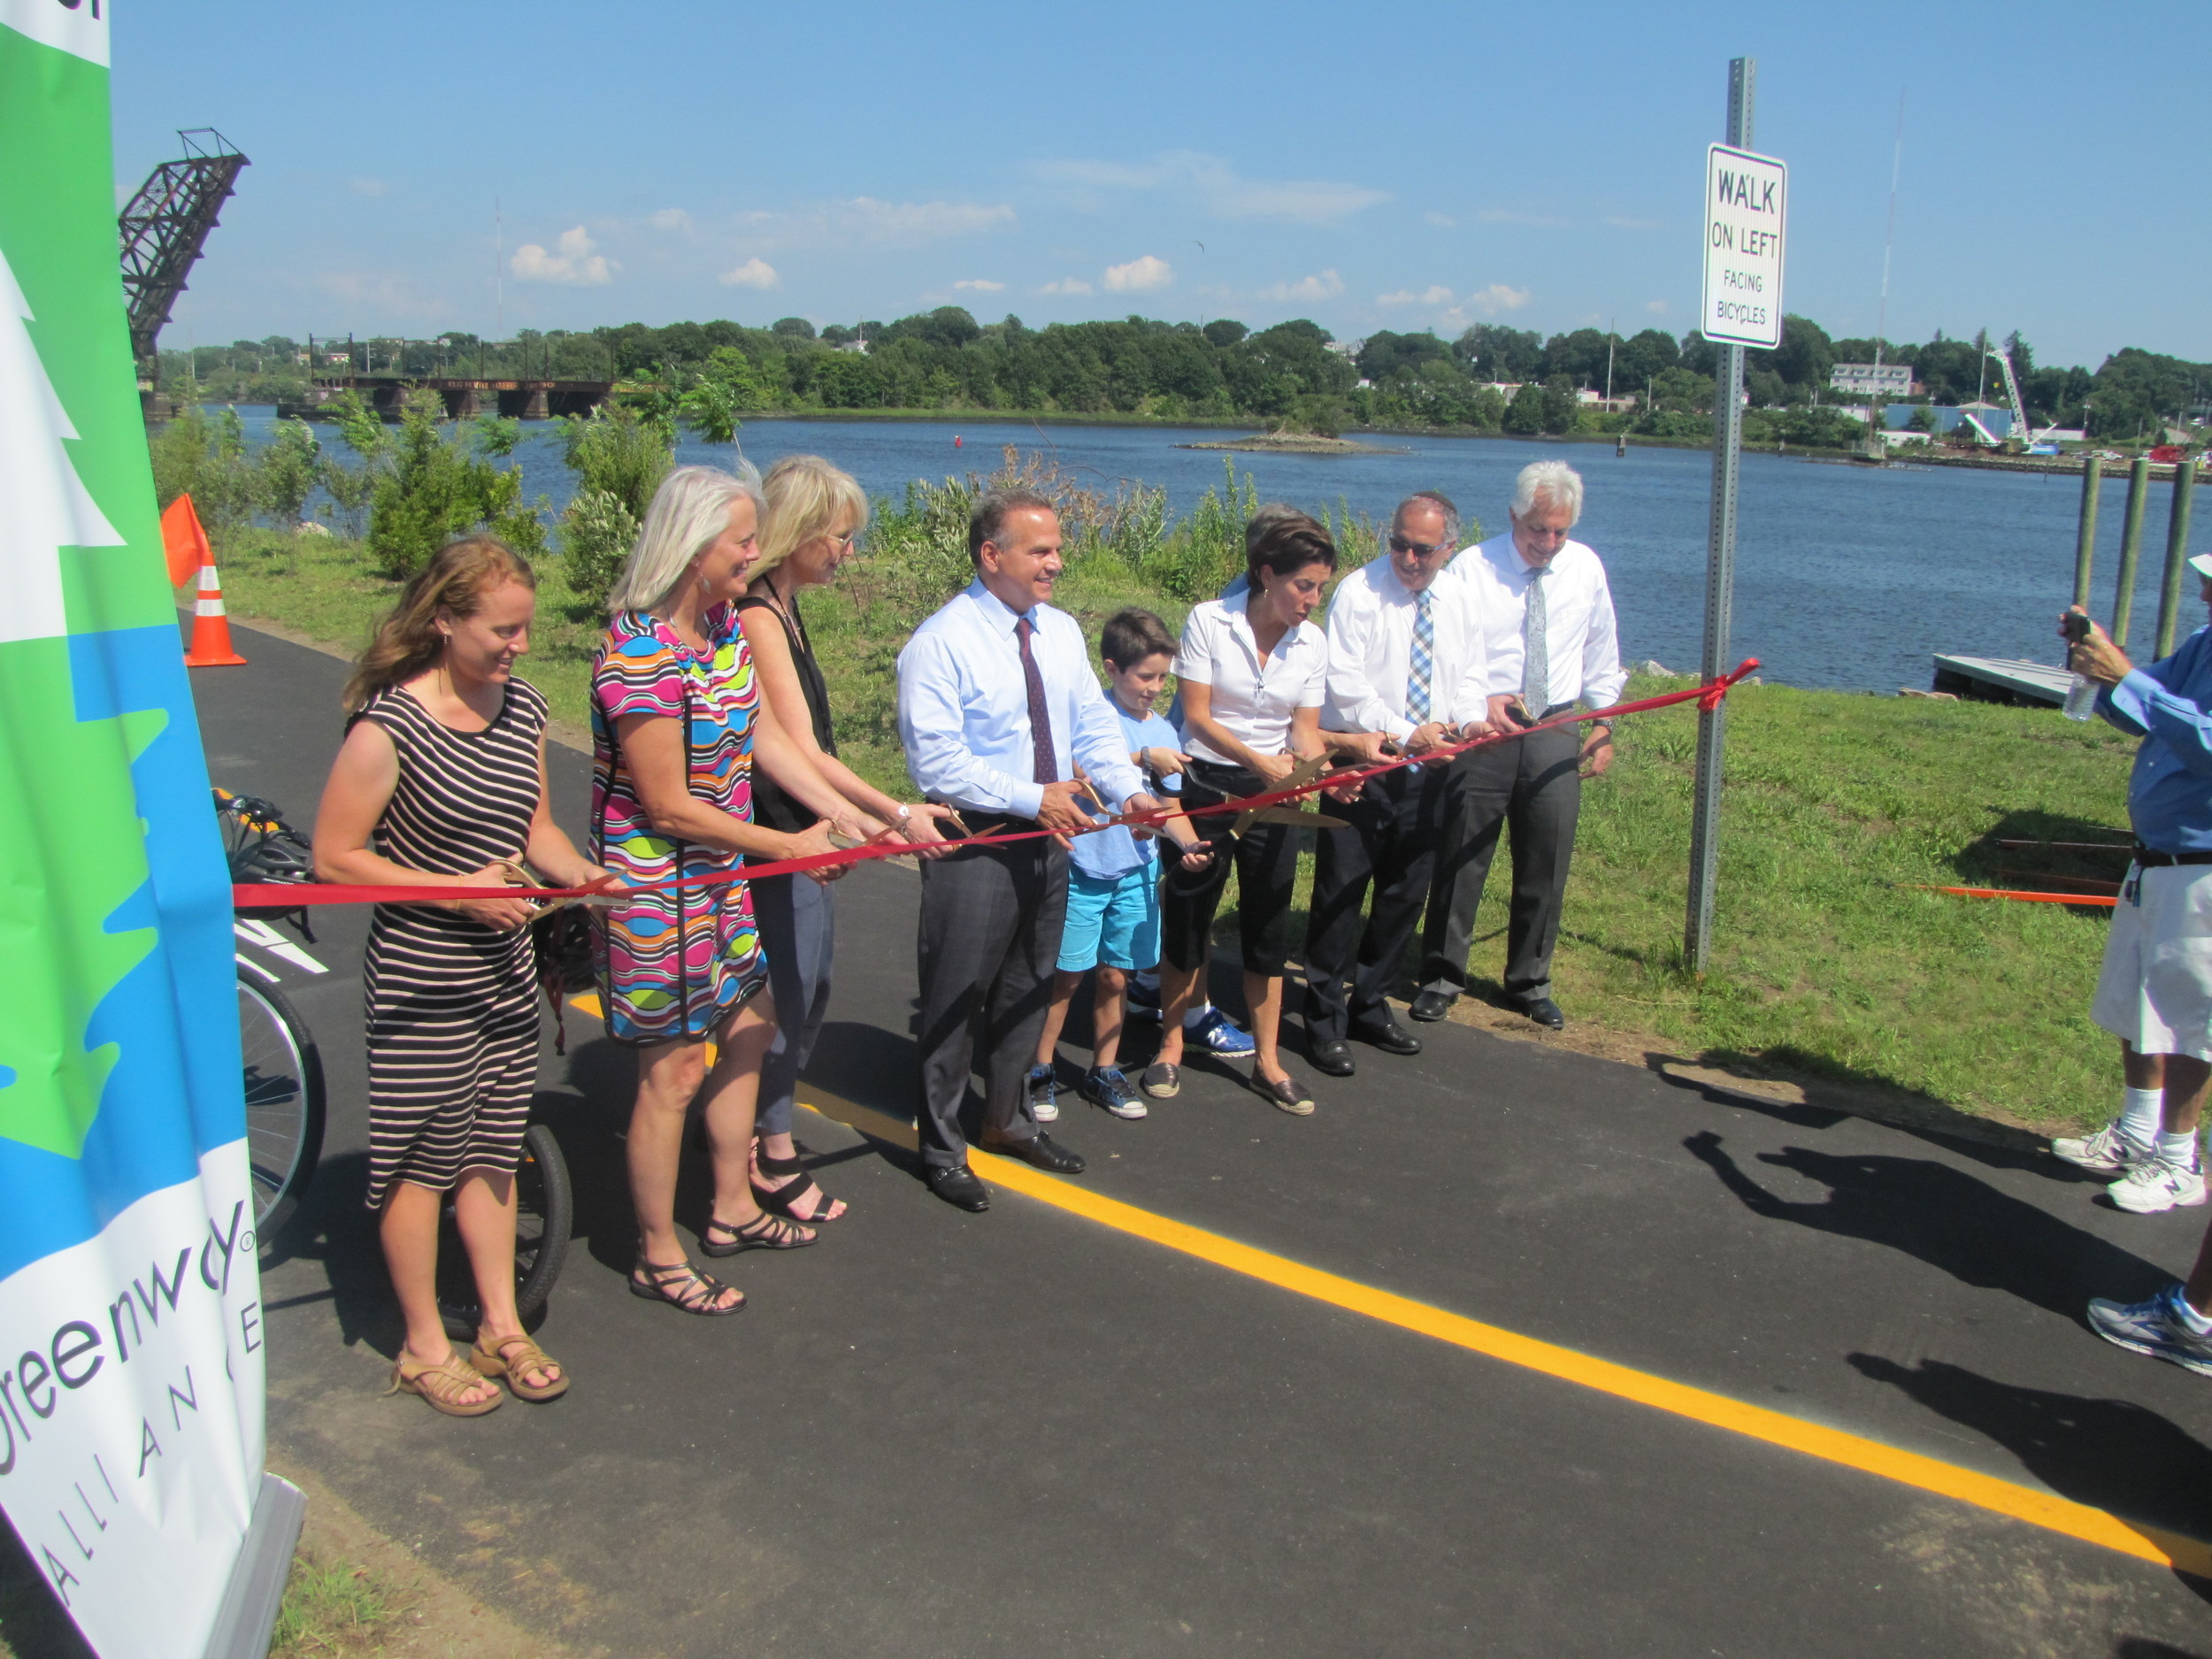 Gov. Gina Raimondo and others celebrate the newest bike path connection in Rhode Island.